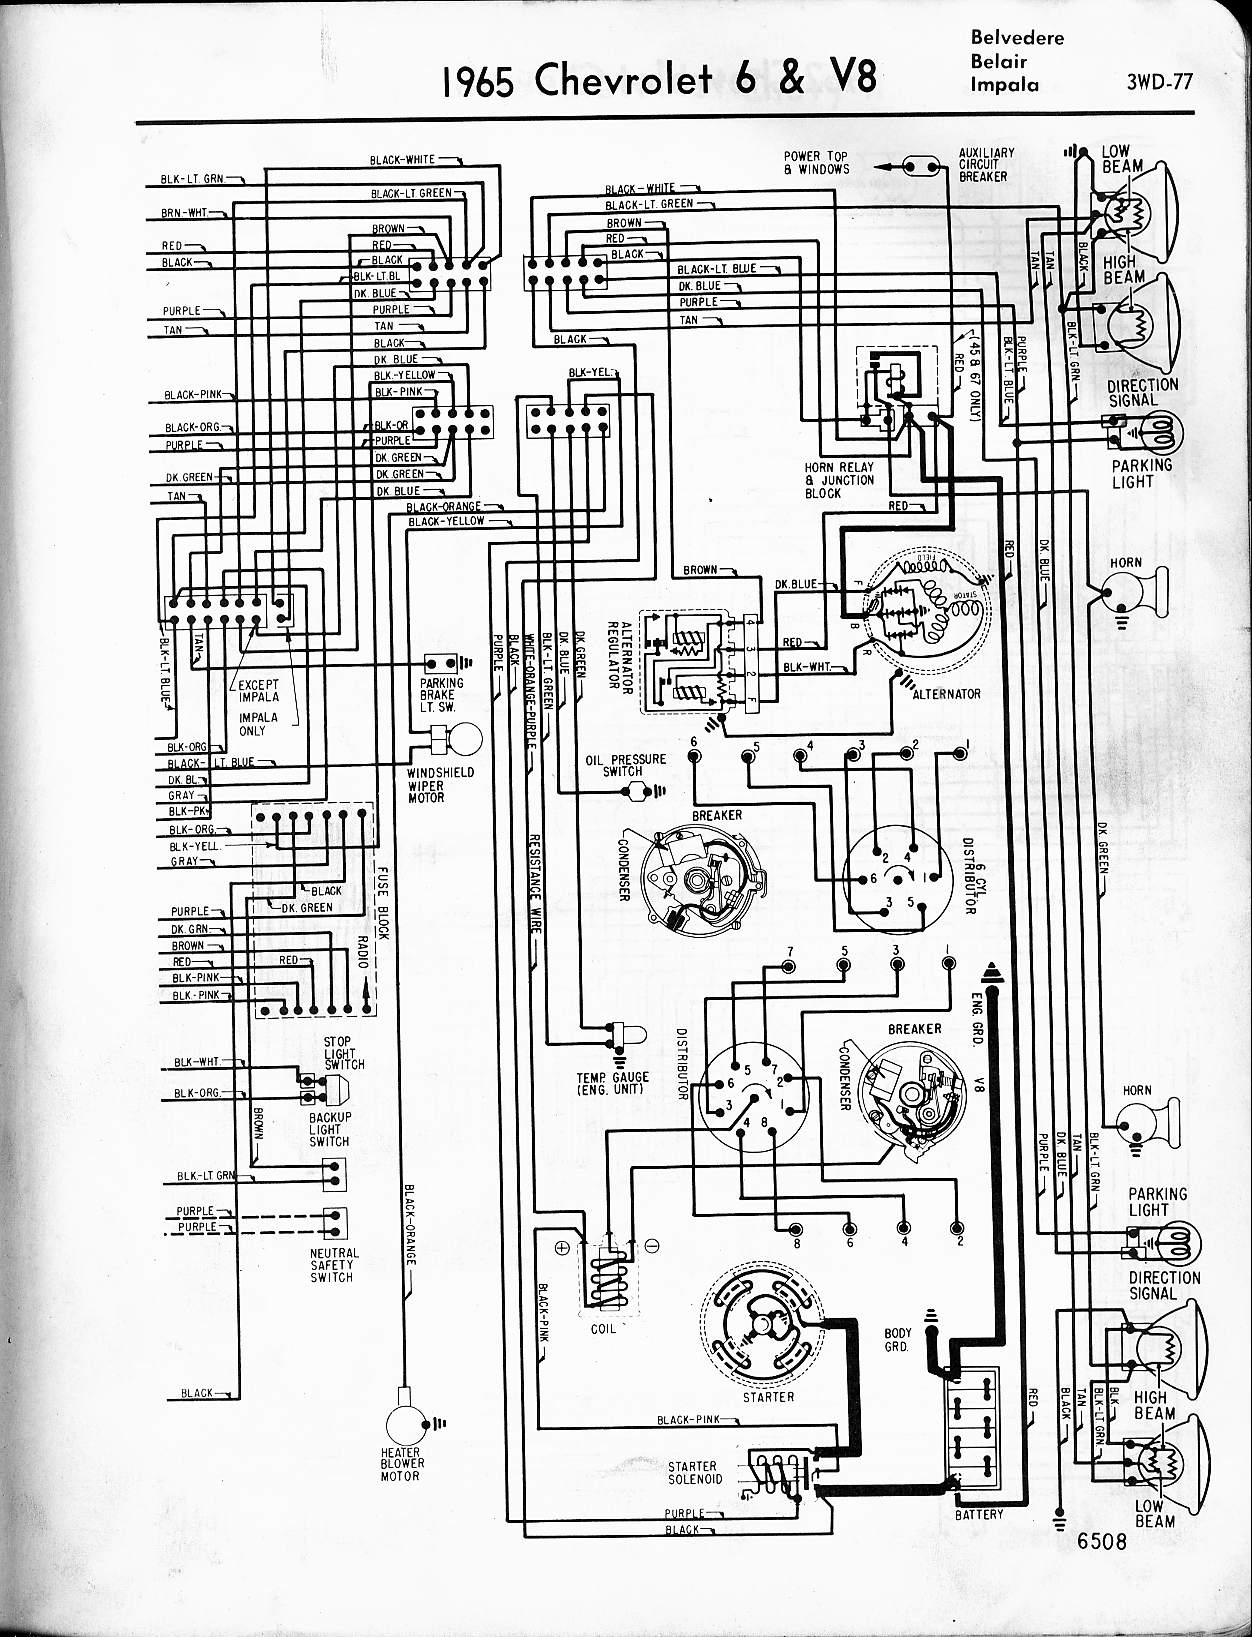 MWireChev65_3WD 077 1970 chevy truck headlight wiring diagram wiring diagram simonand chevrolet wiring harness at mifinder.co